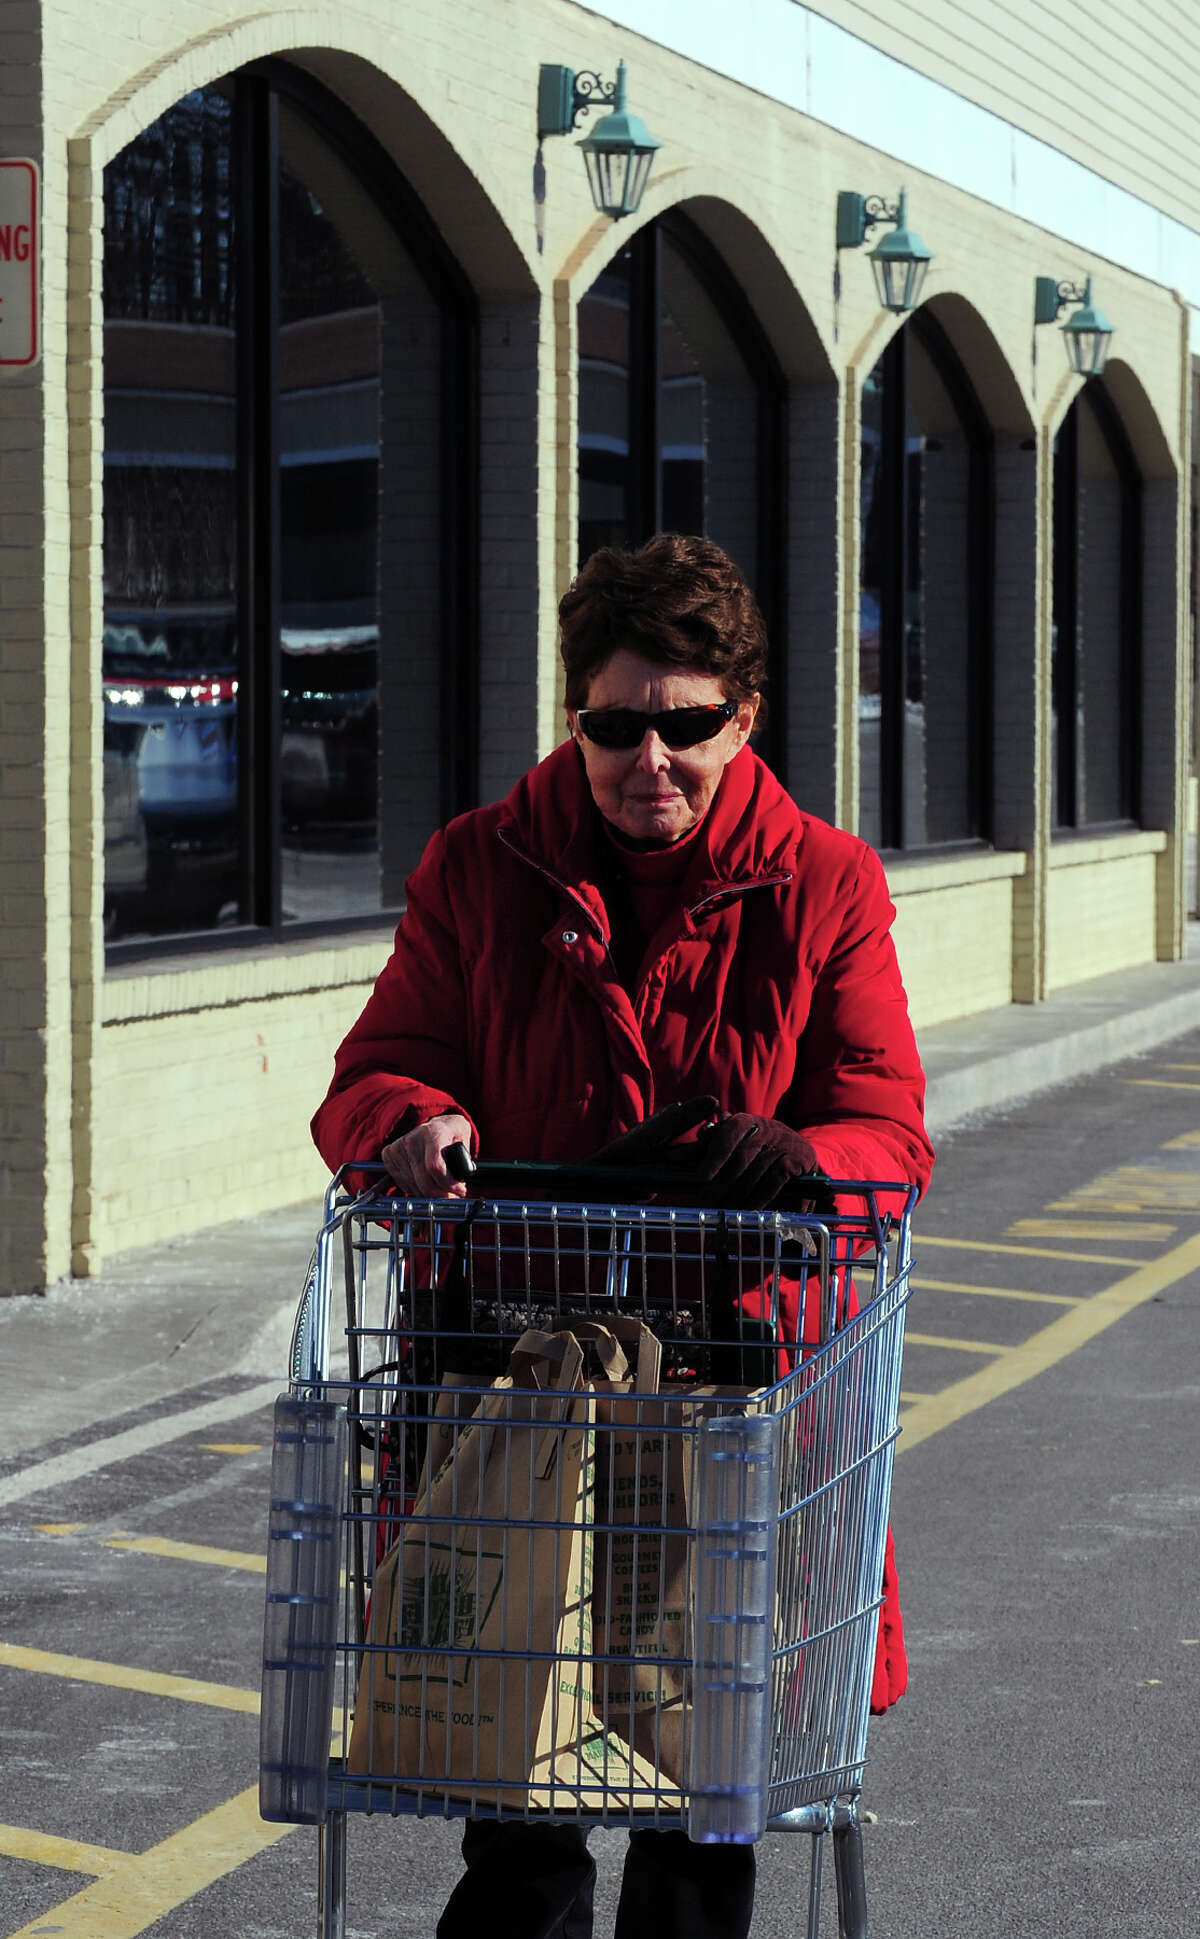 Florence Josem, of Norwalk, walks to her vehicle with groceries at The Fresh Market in Westport, Conn., on Saturday Jan. 10, 2015. The state is considering a ban on plastic bags. The Fresh Market has already stopped using them in its store. If outlawed buyers would be forced to either bring their own bags or pay for store paper bags.